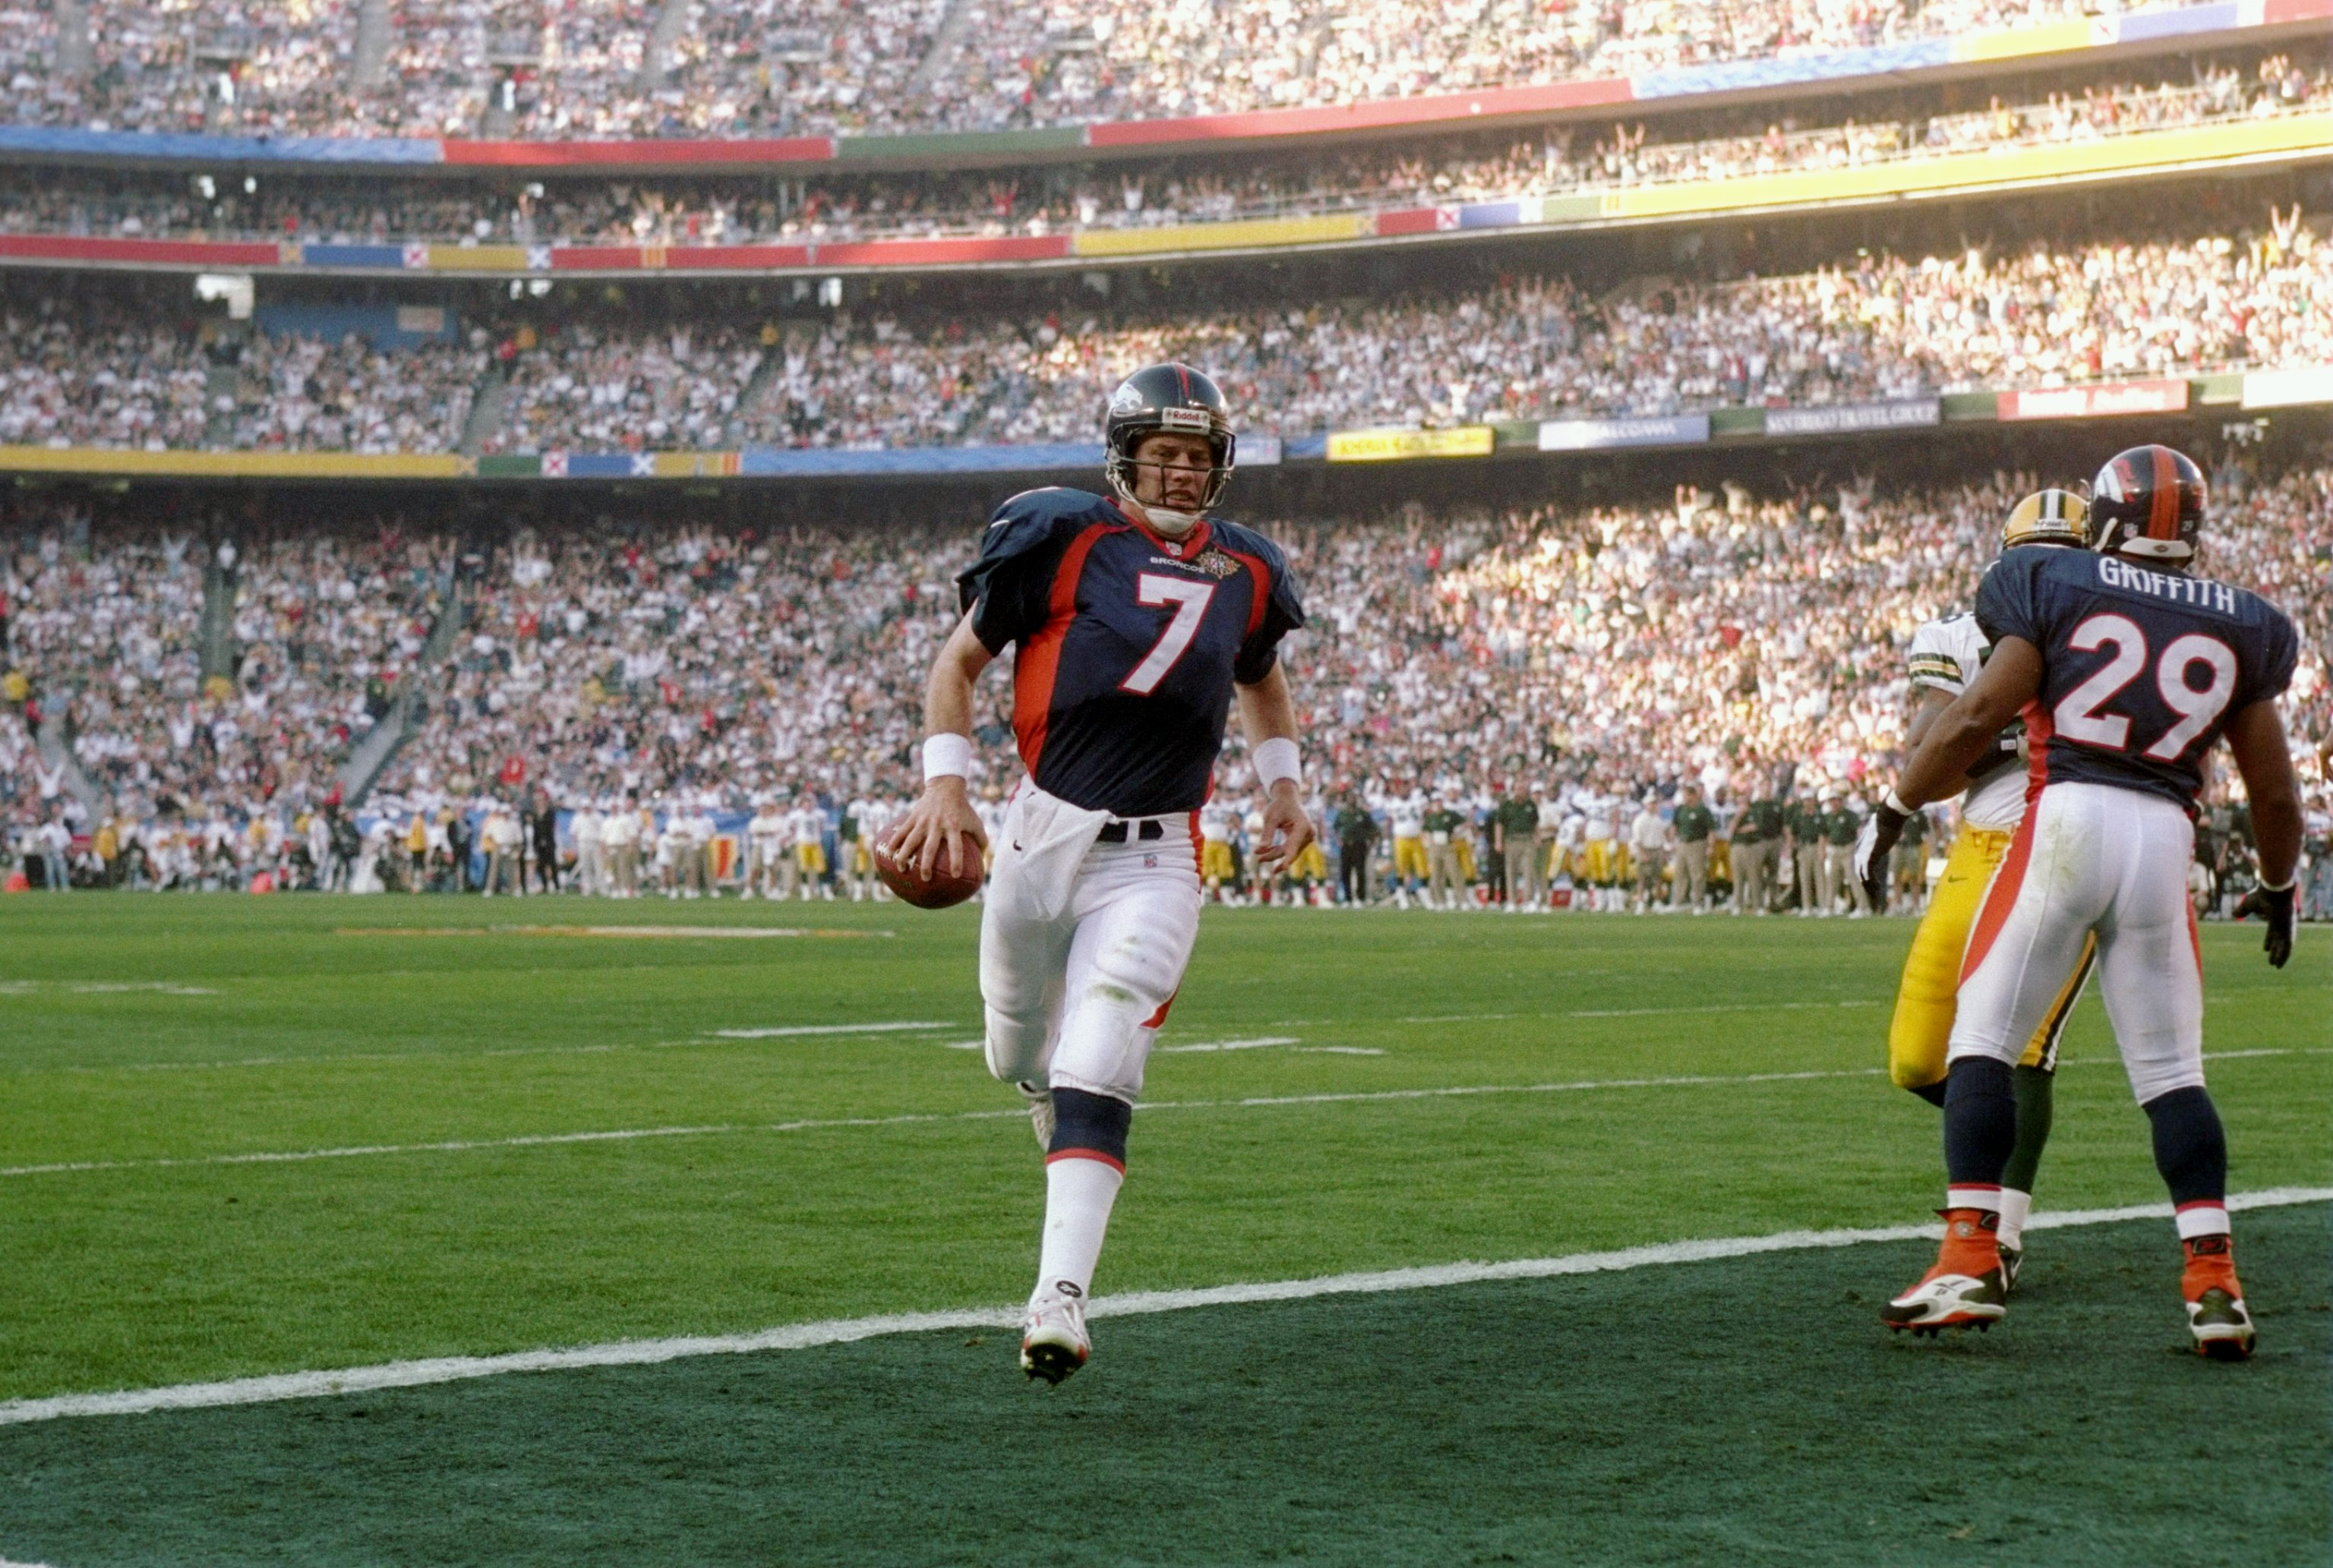 25 Jan 1998:  John Elway #7 of the Denver Broncos runs into the end zone for the touchdown against the Green Bay Packers during Super Bowl  XXXII at Qualcomm Stadium in San Diego, California.  The Denver Broncos defeated the Green Bay Packers 31-24. Manda